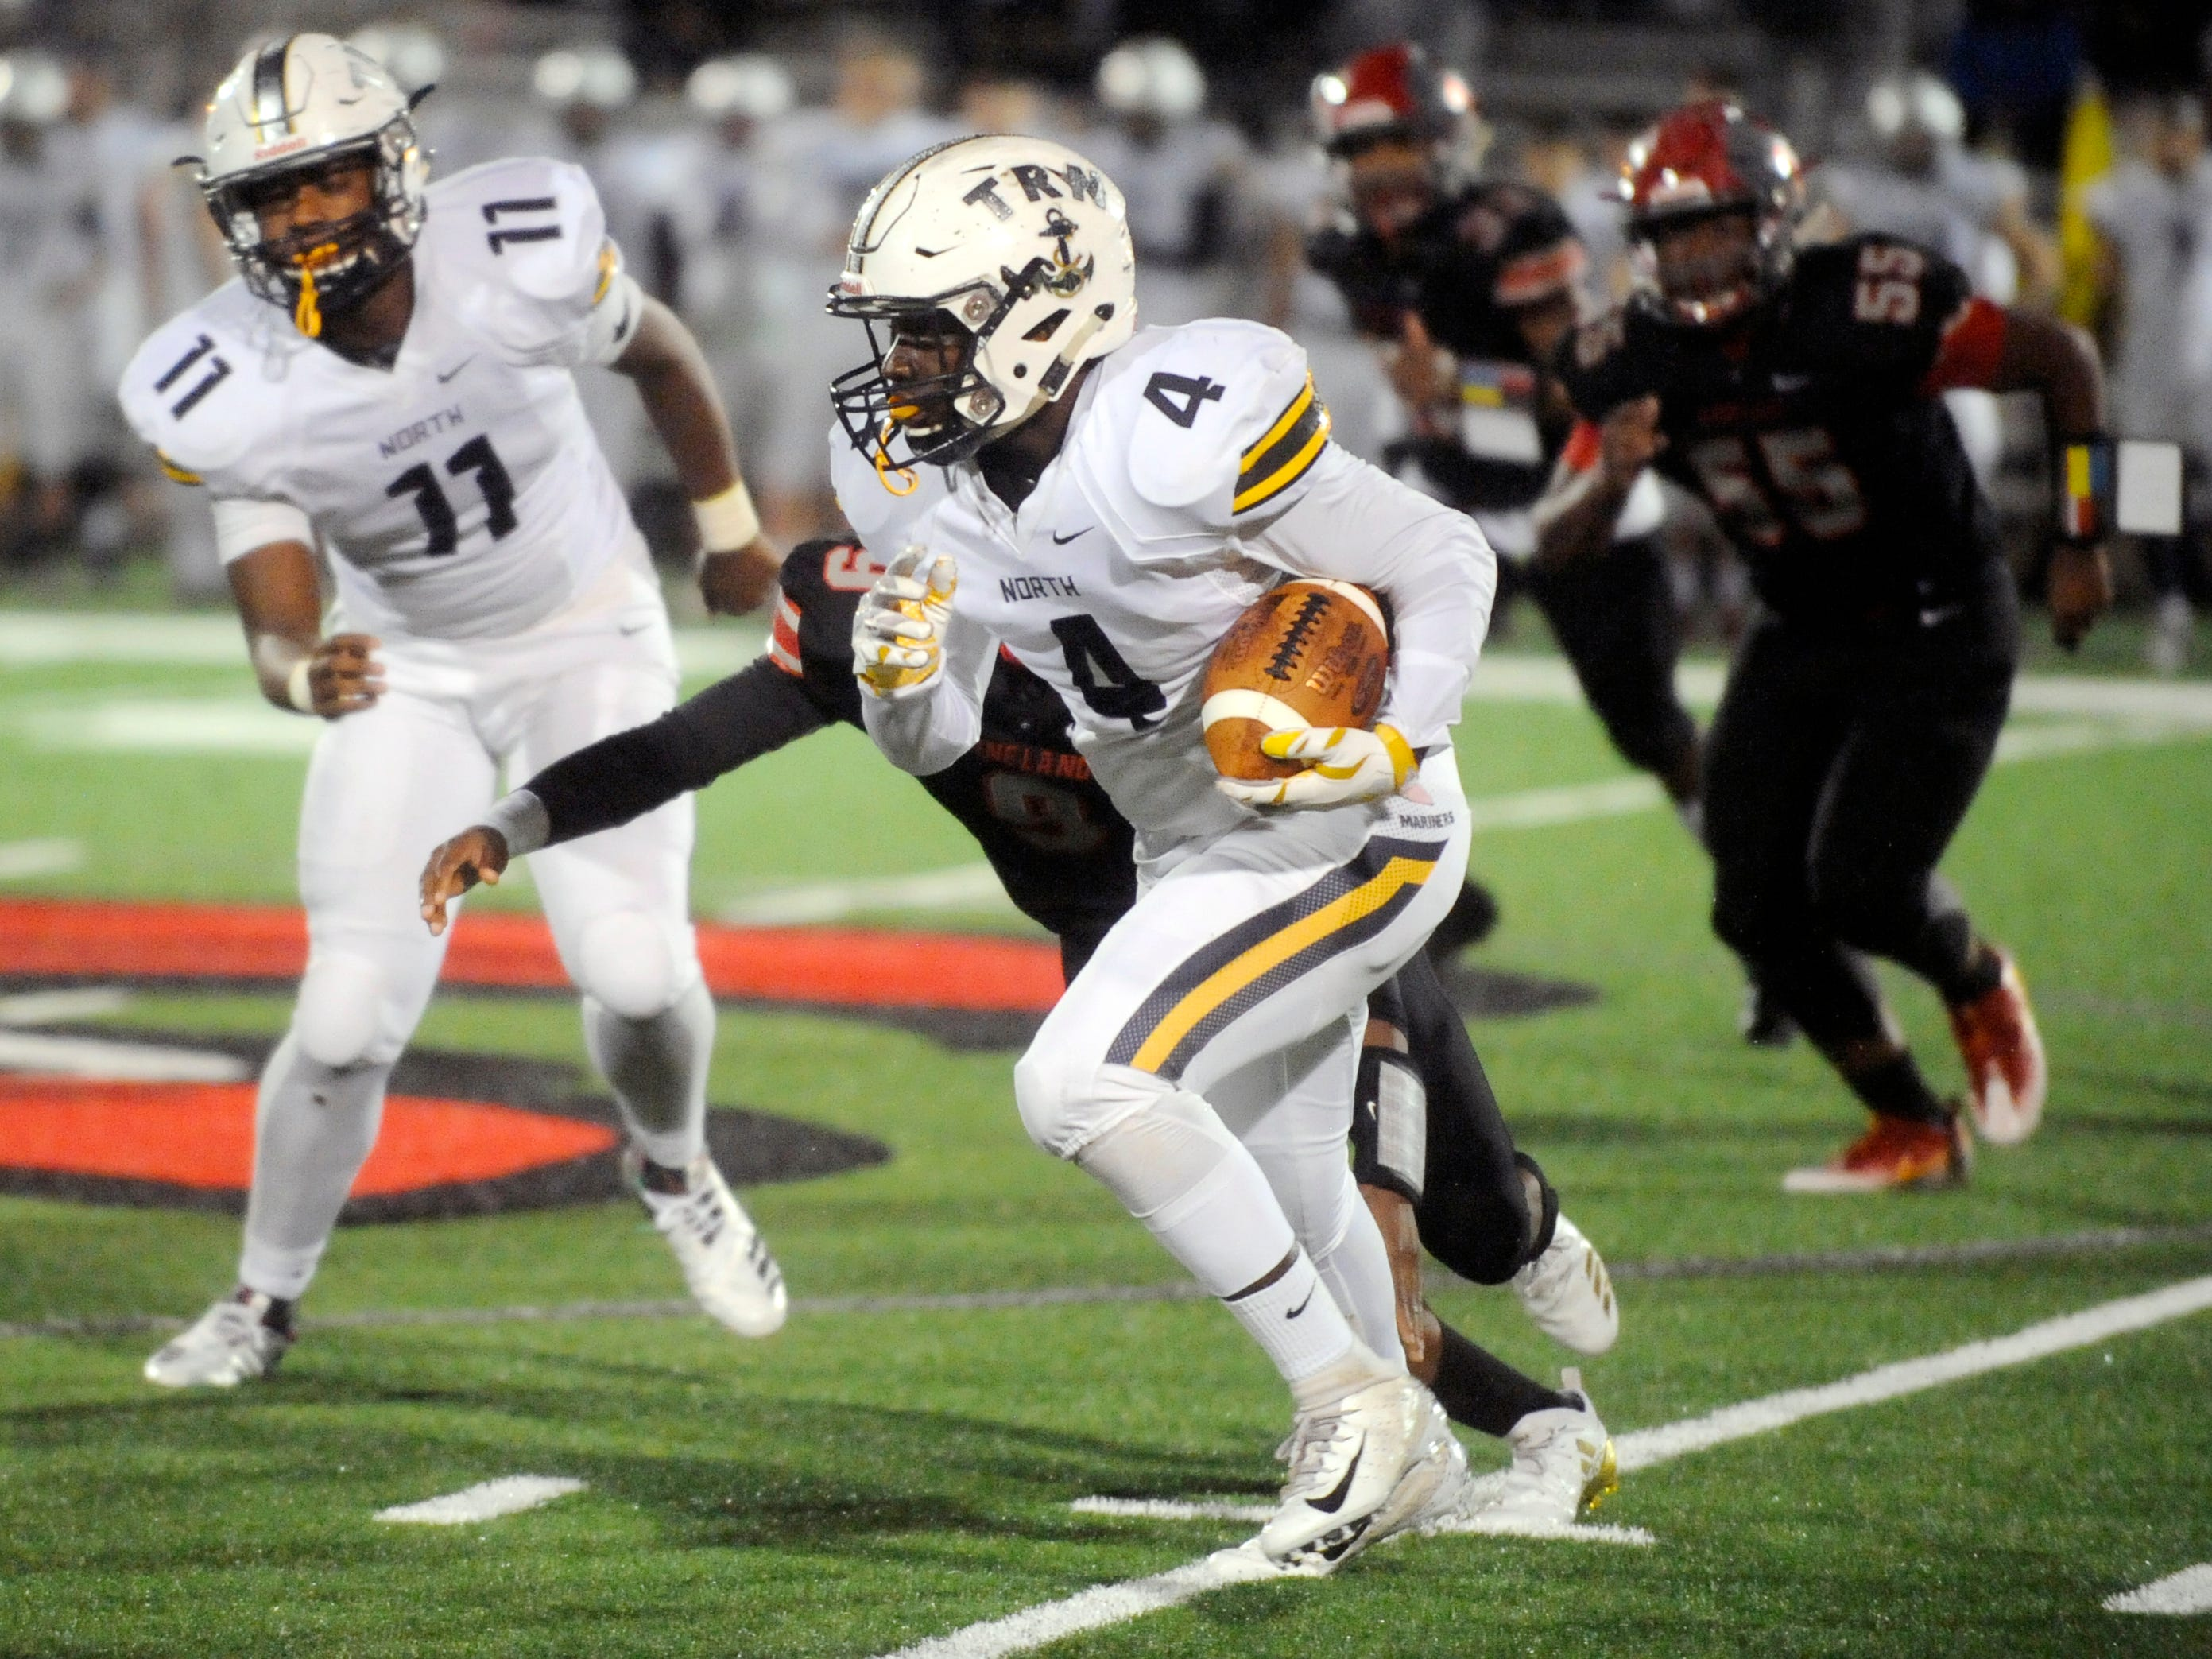 The Fighting Clan defeated visiting Toms River North in a South Jersey Group 5 playoff game. Vineland beat the Mariners at Gittone Stadium, 33-0, on Friday, November 2, 2018.